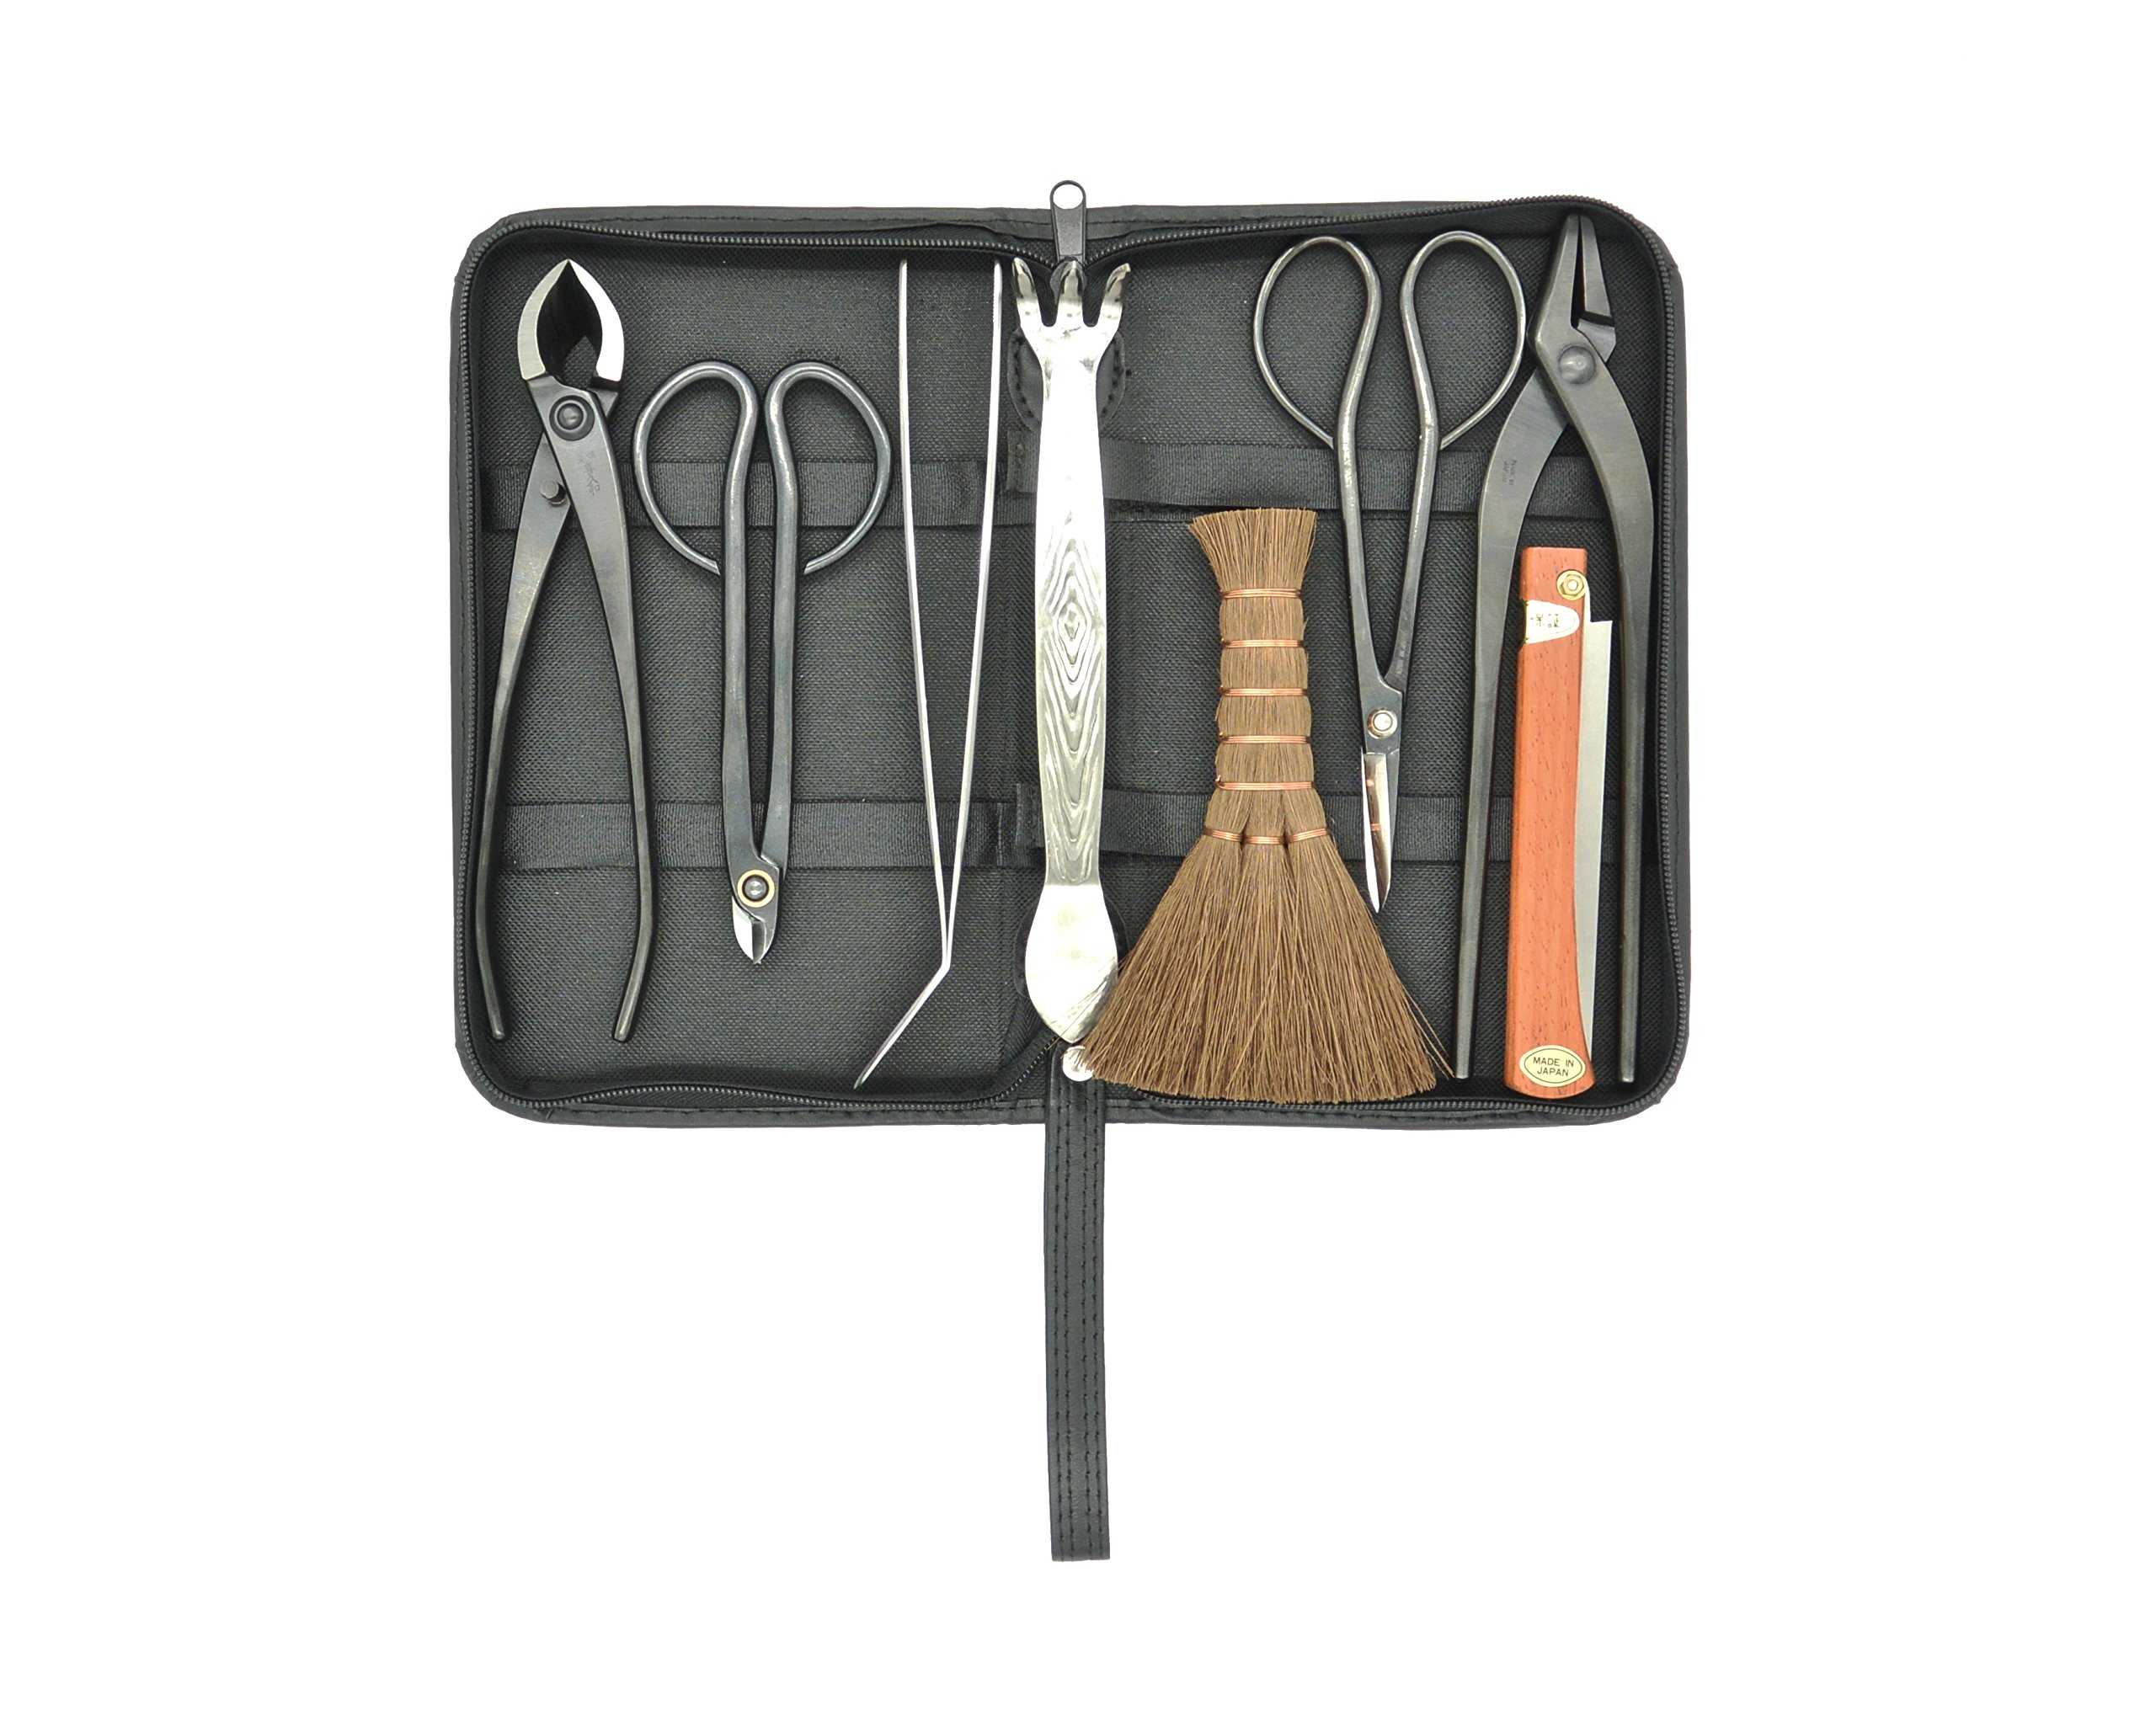 Bonsai tool kit 8 pcs